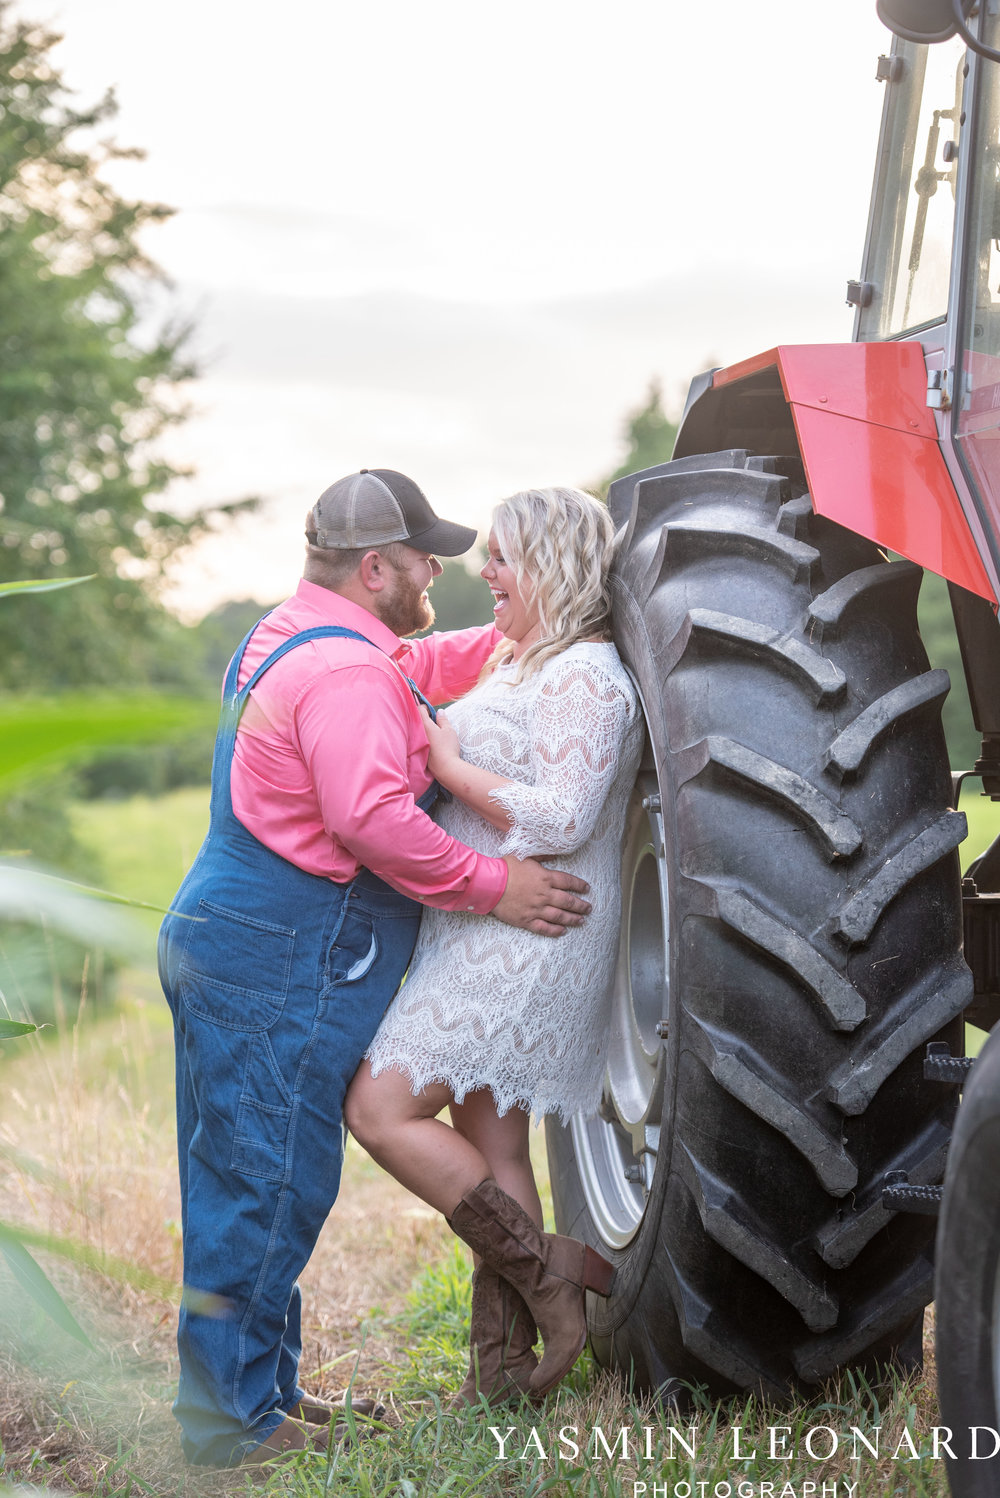 NC Engaged - Wallburg Engagement - Country Engagement Session - Barn Engagement Session - Outdoor Engagement Session - Farmer Engagement Session - Engagement Session with Overalls and Boots-15.jpg